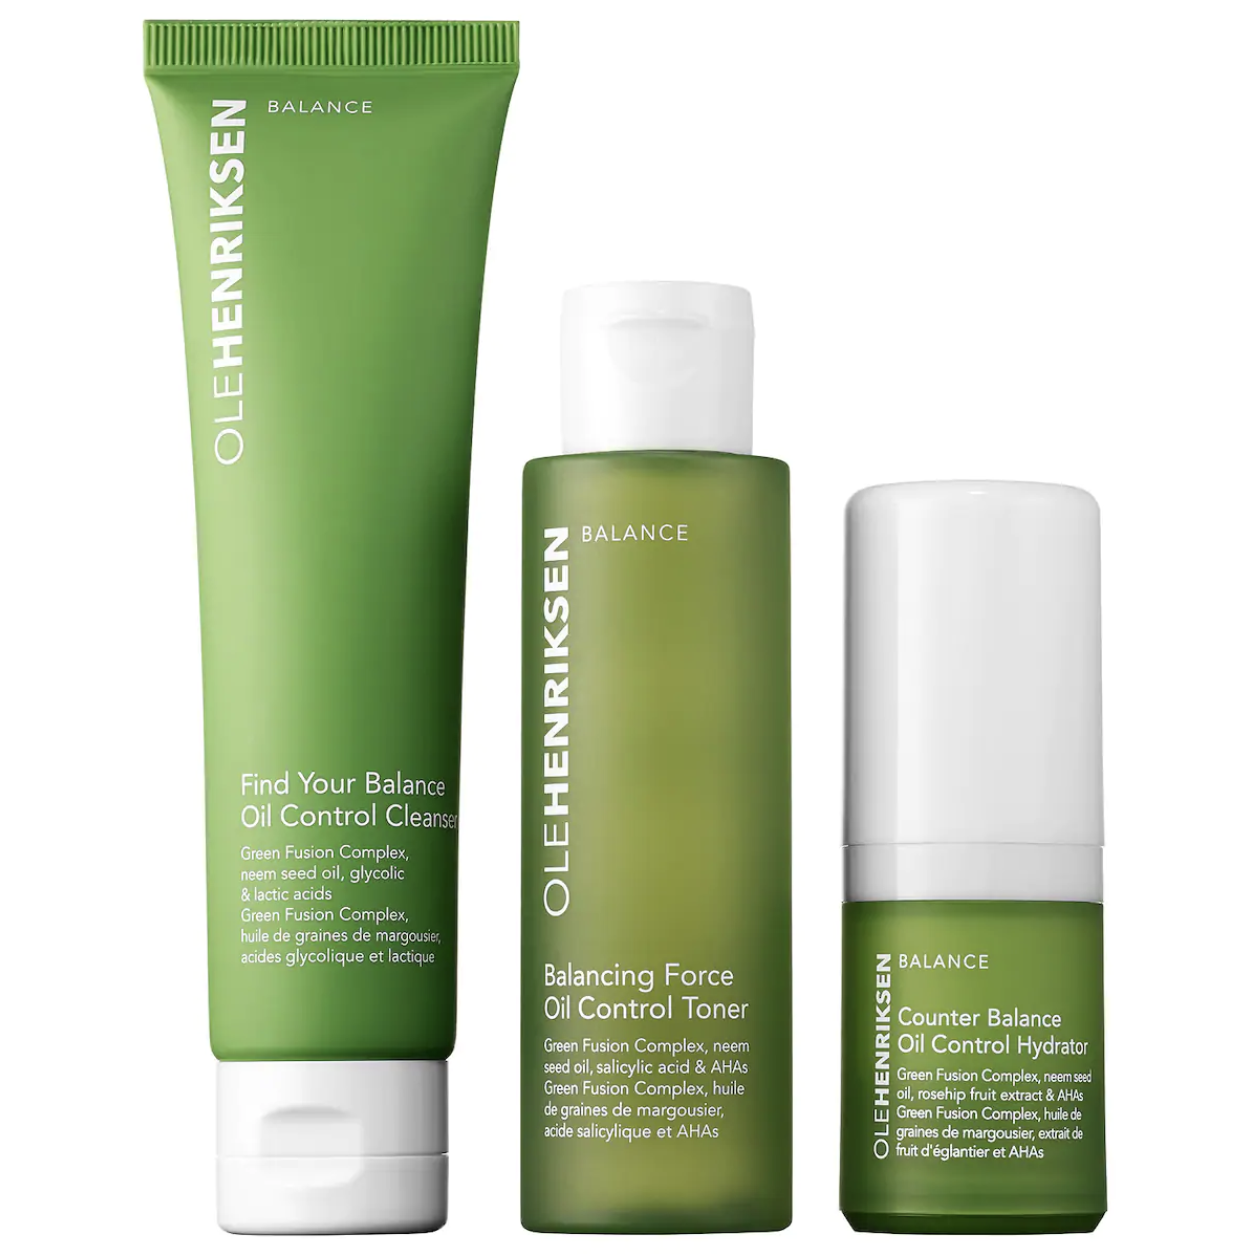 The three products